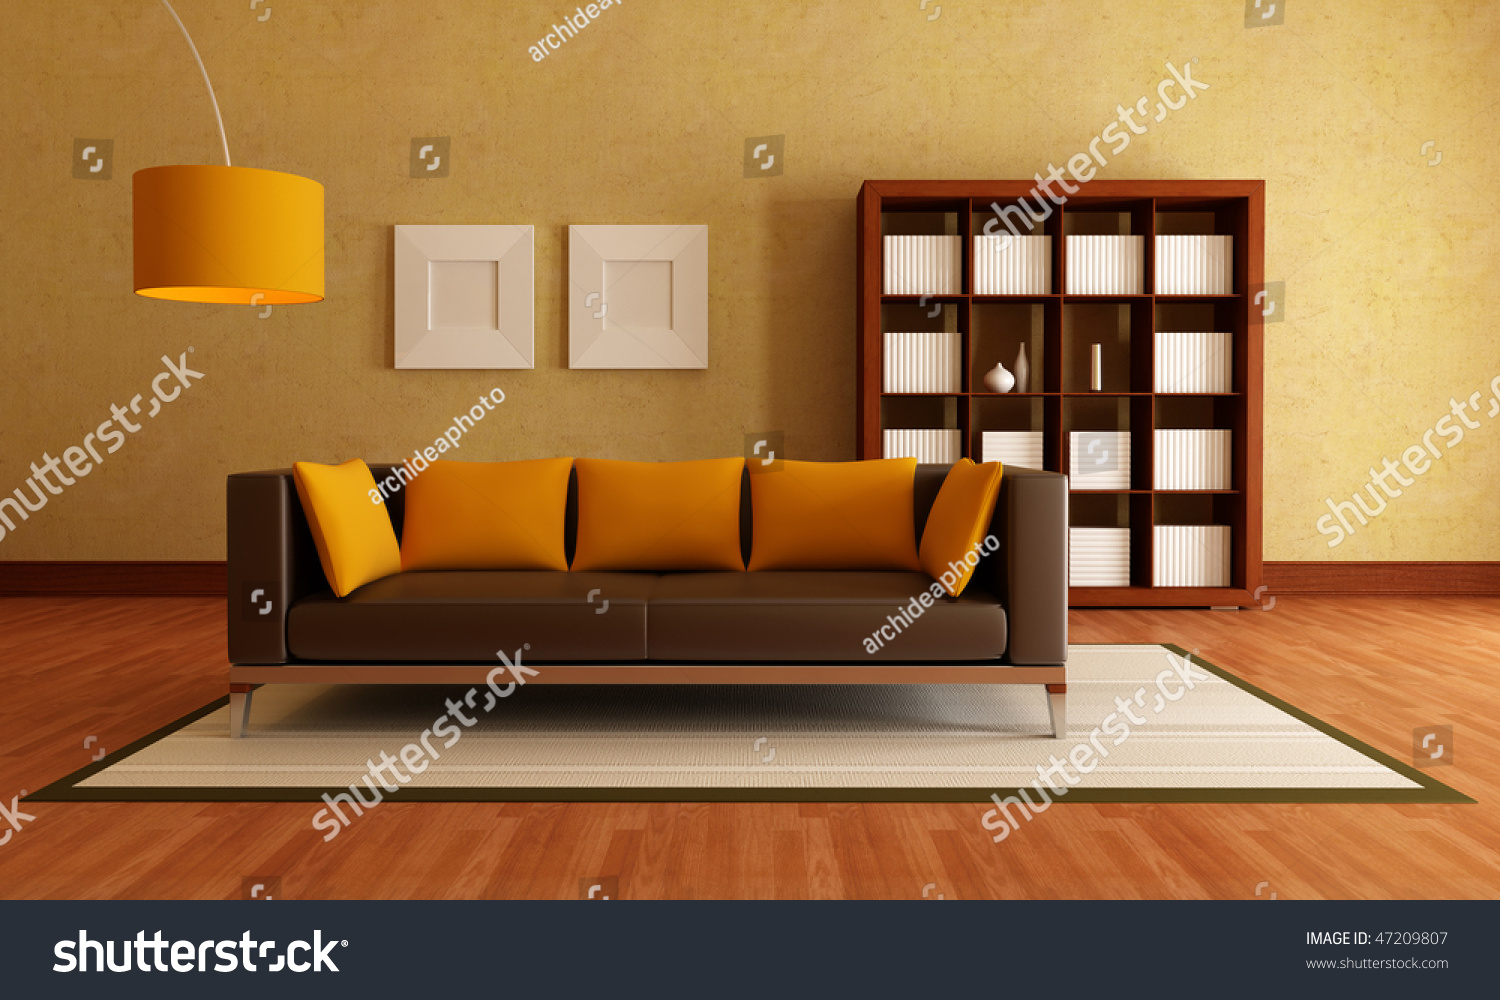 Orange And Brown Living Room Brown Modern Couch And Wood Bookcase In A Living Room Rendering